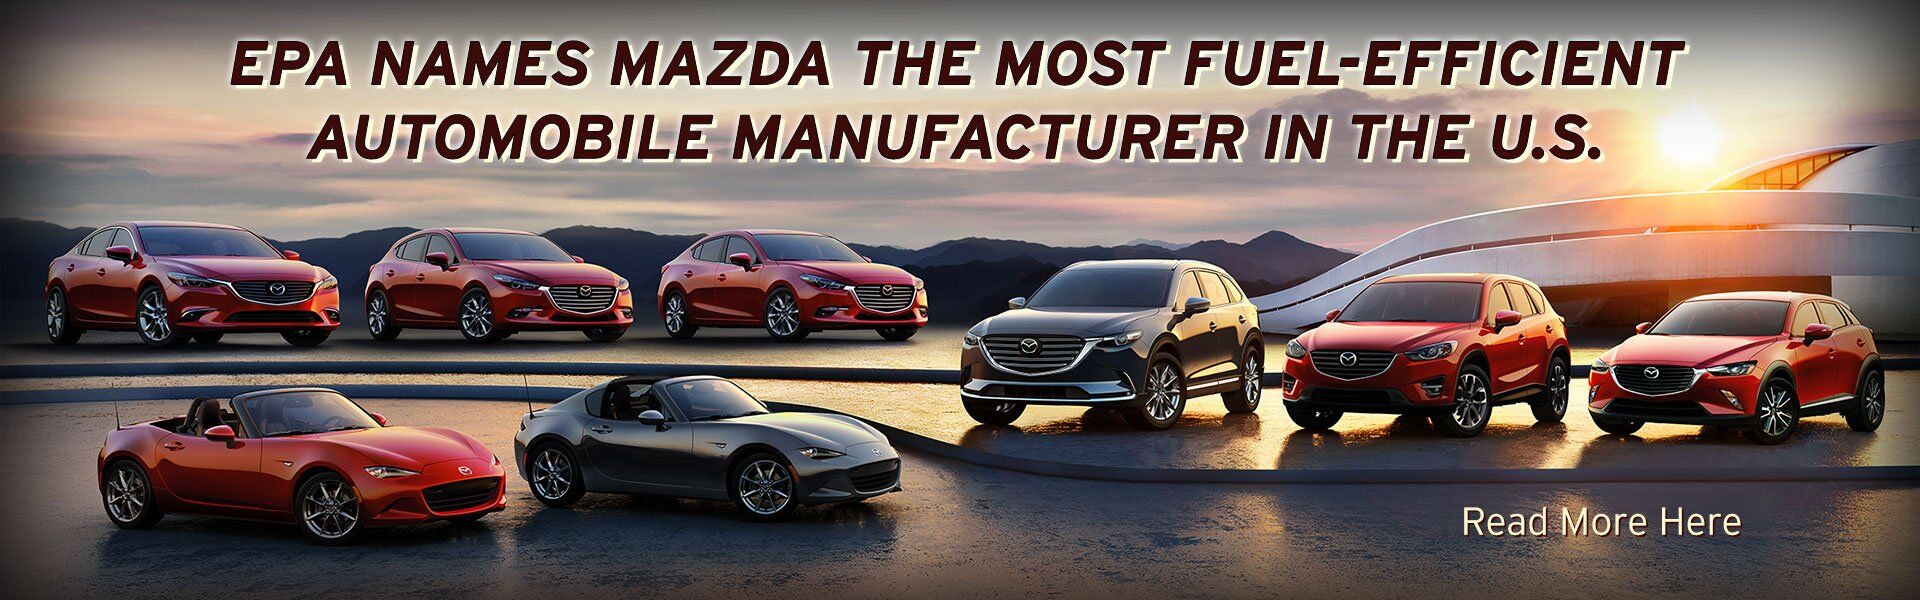 hight resolution of mazda most fuel efficient